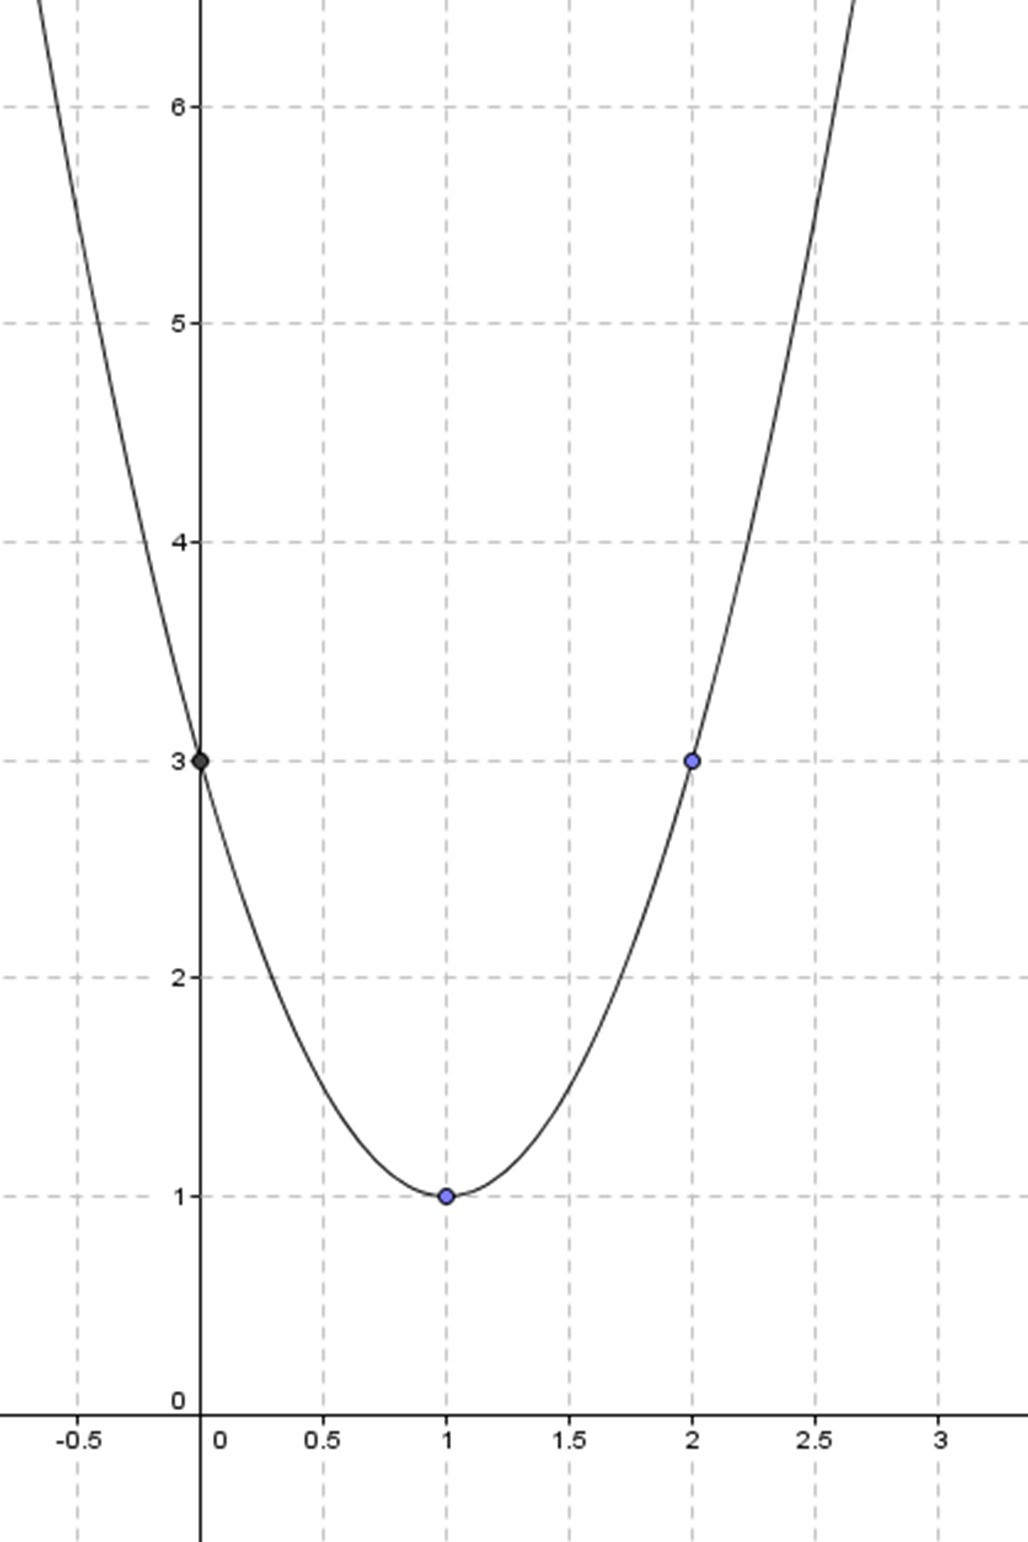 Graphing Inverse Functions Worksheet Draw A Function 2x2 4x 3 Free Math Worksheets